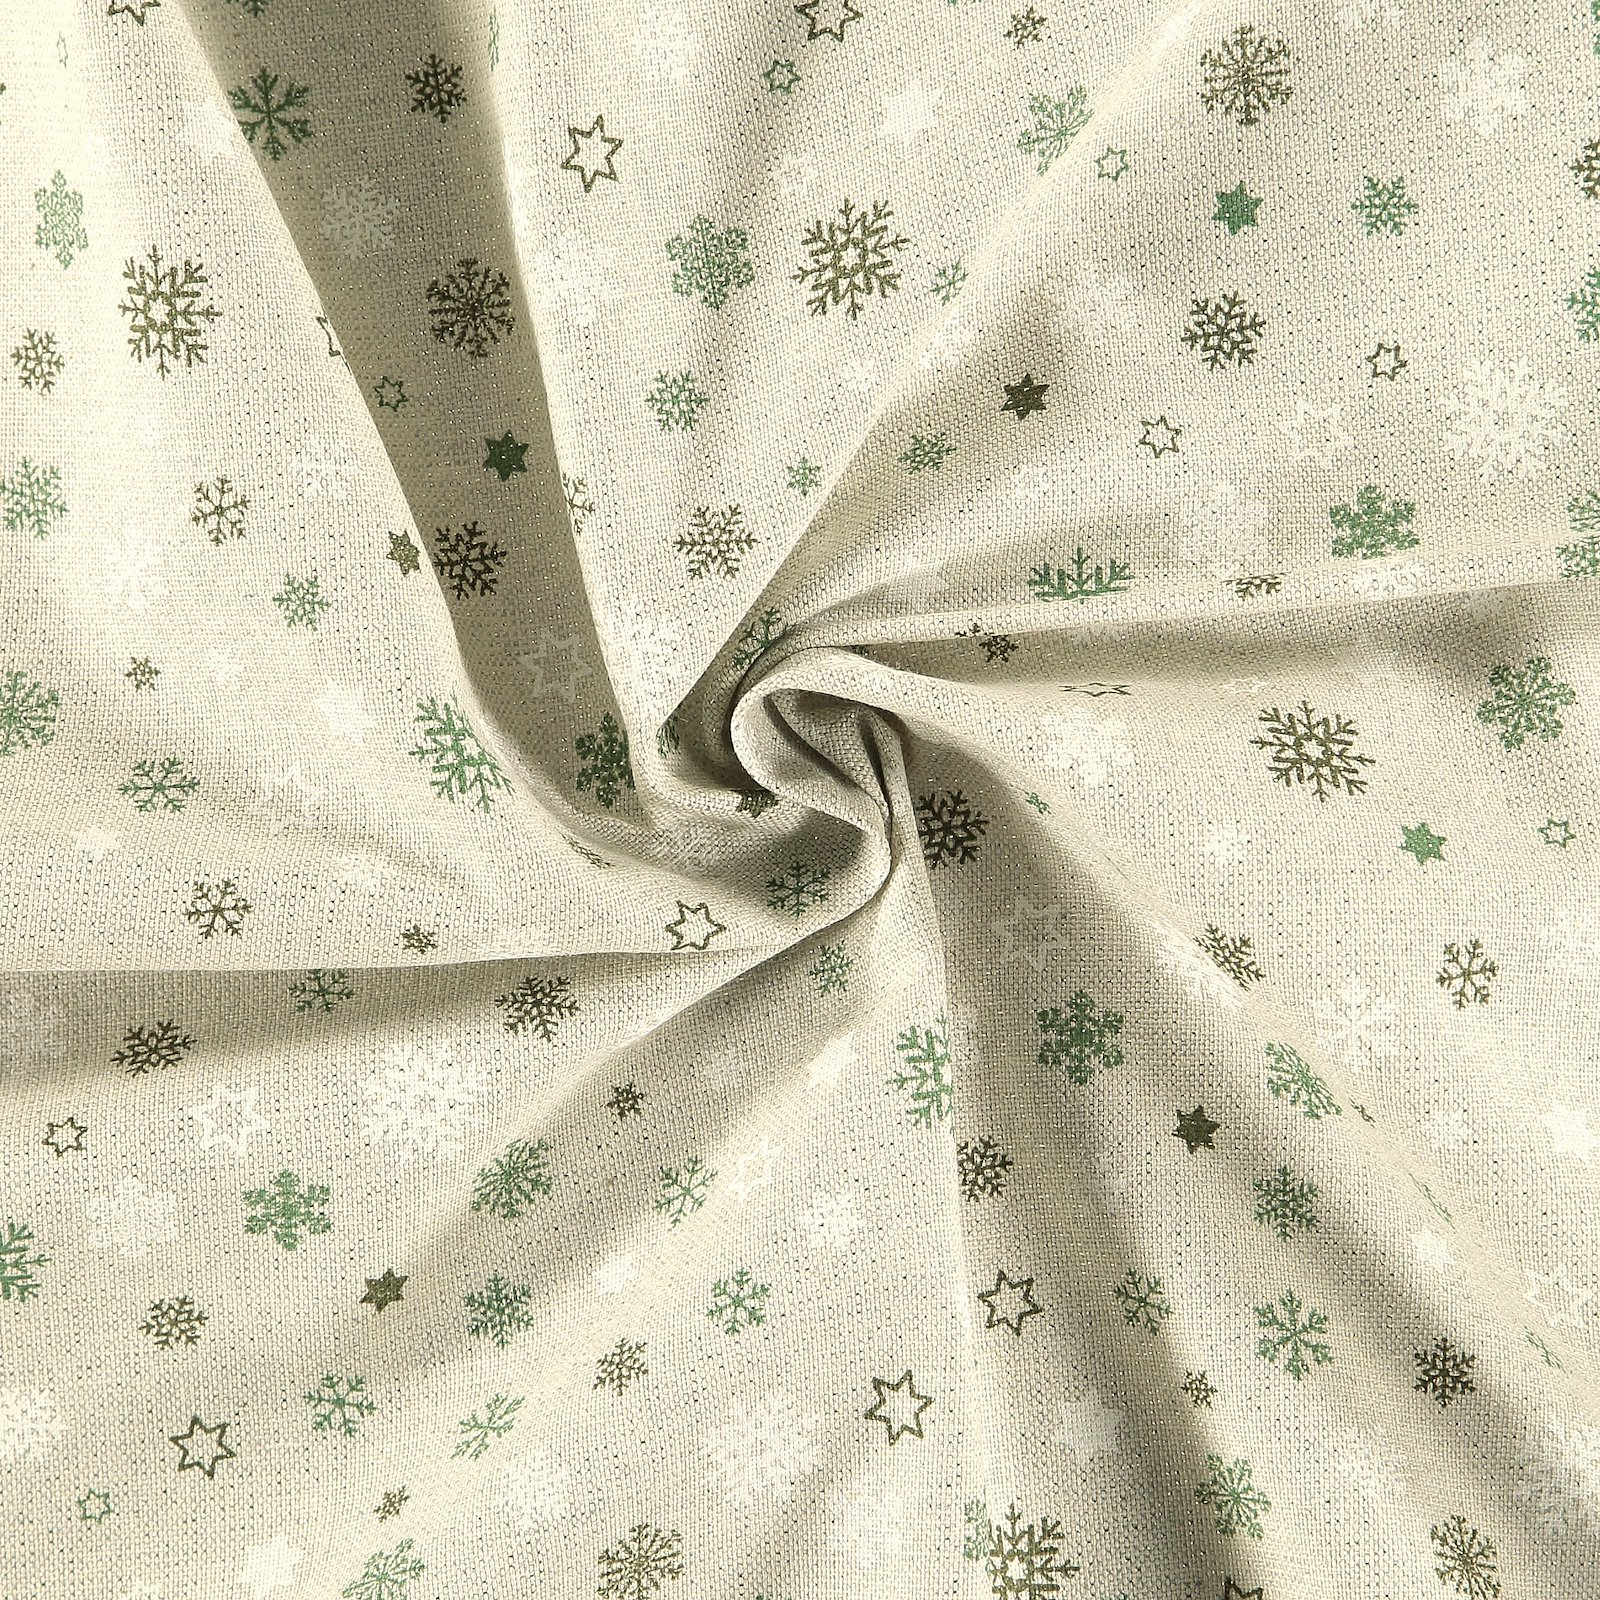 Woven nature w silver lurex / snowflakes 895946_pack